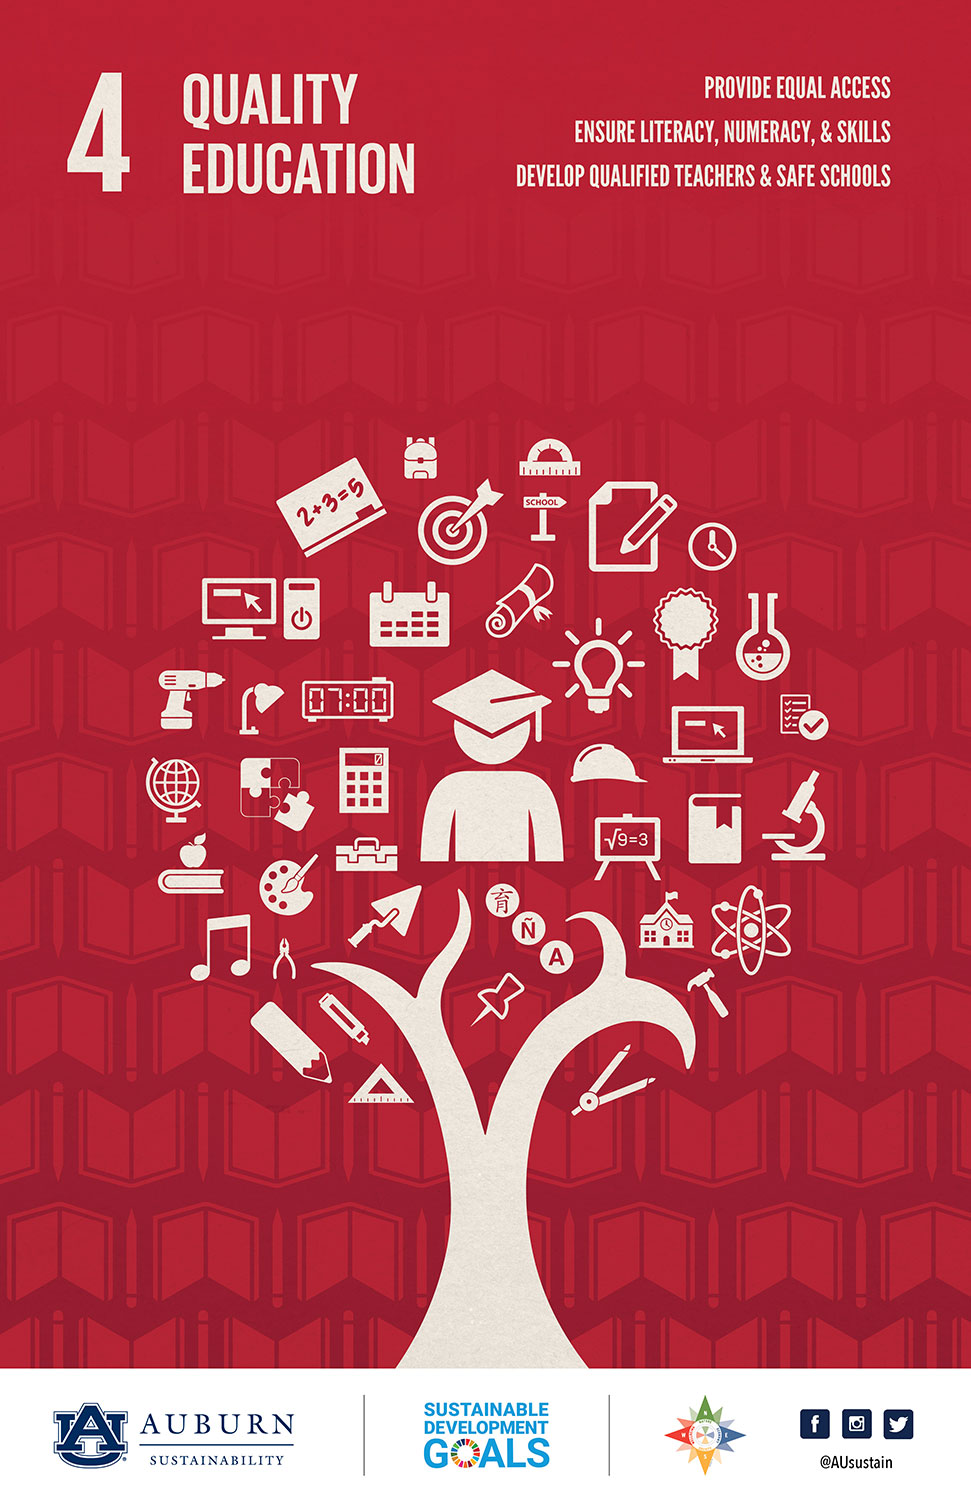 Sustainable Development Goal 4 Poster illustration: Quality Education. Goals include: Provide Equal Access, Ensure Literacy, Numeracy, and Skills, and Develop Qualified Teachers and Safe Schools.